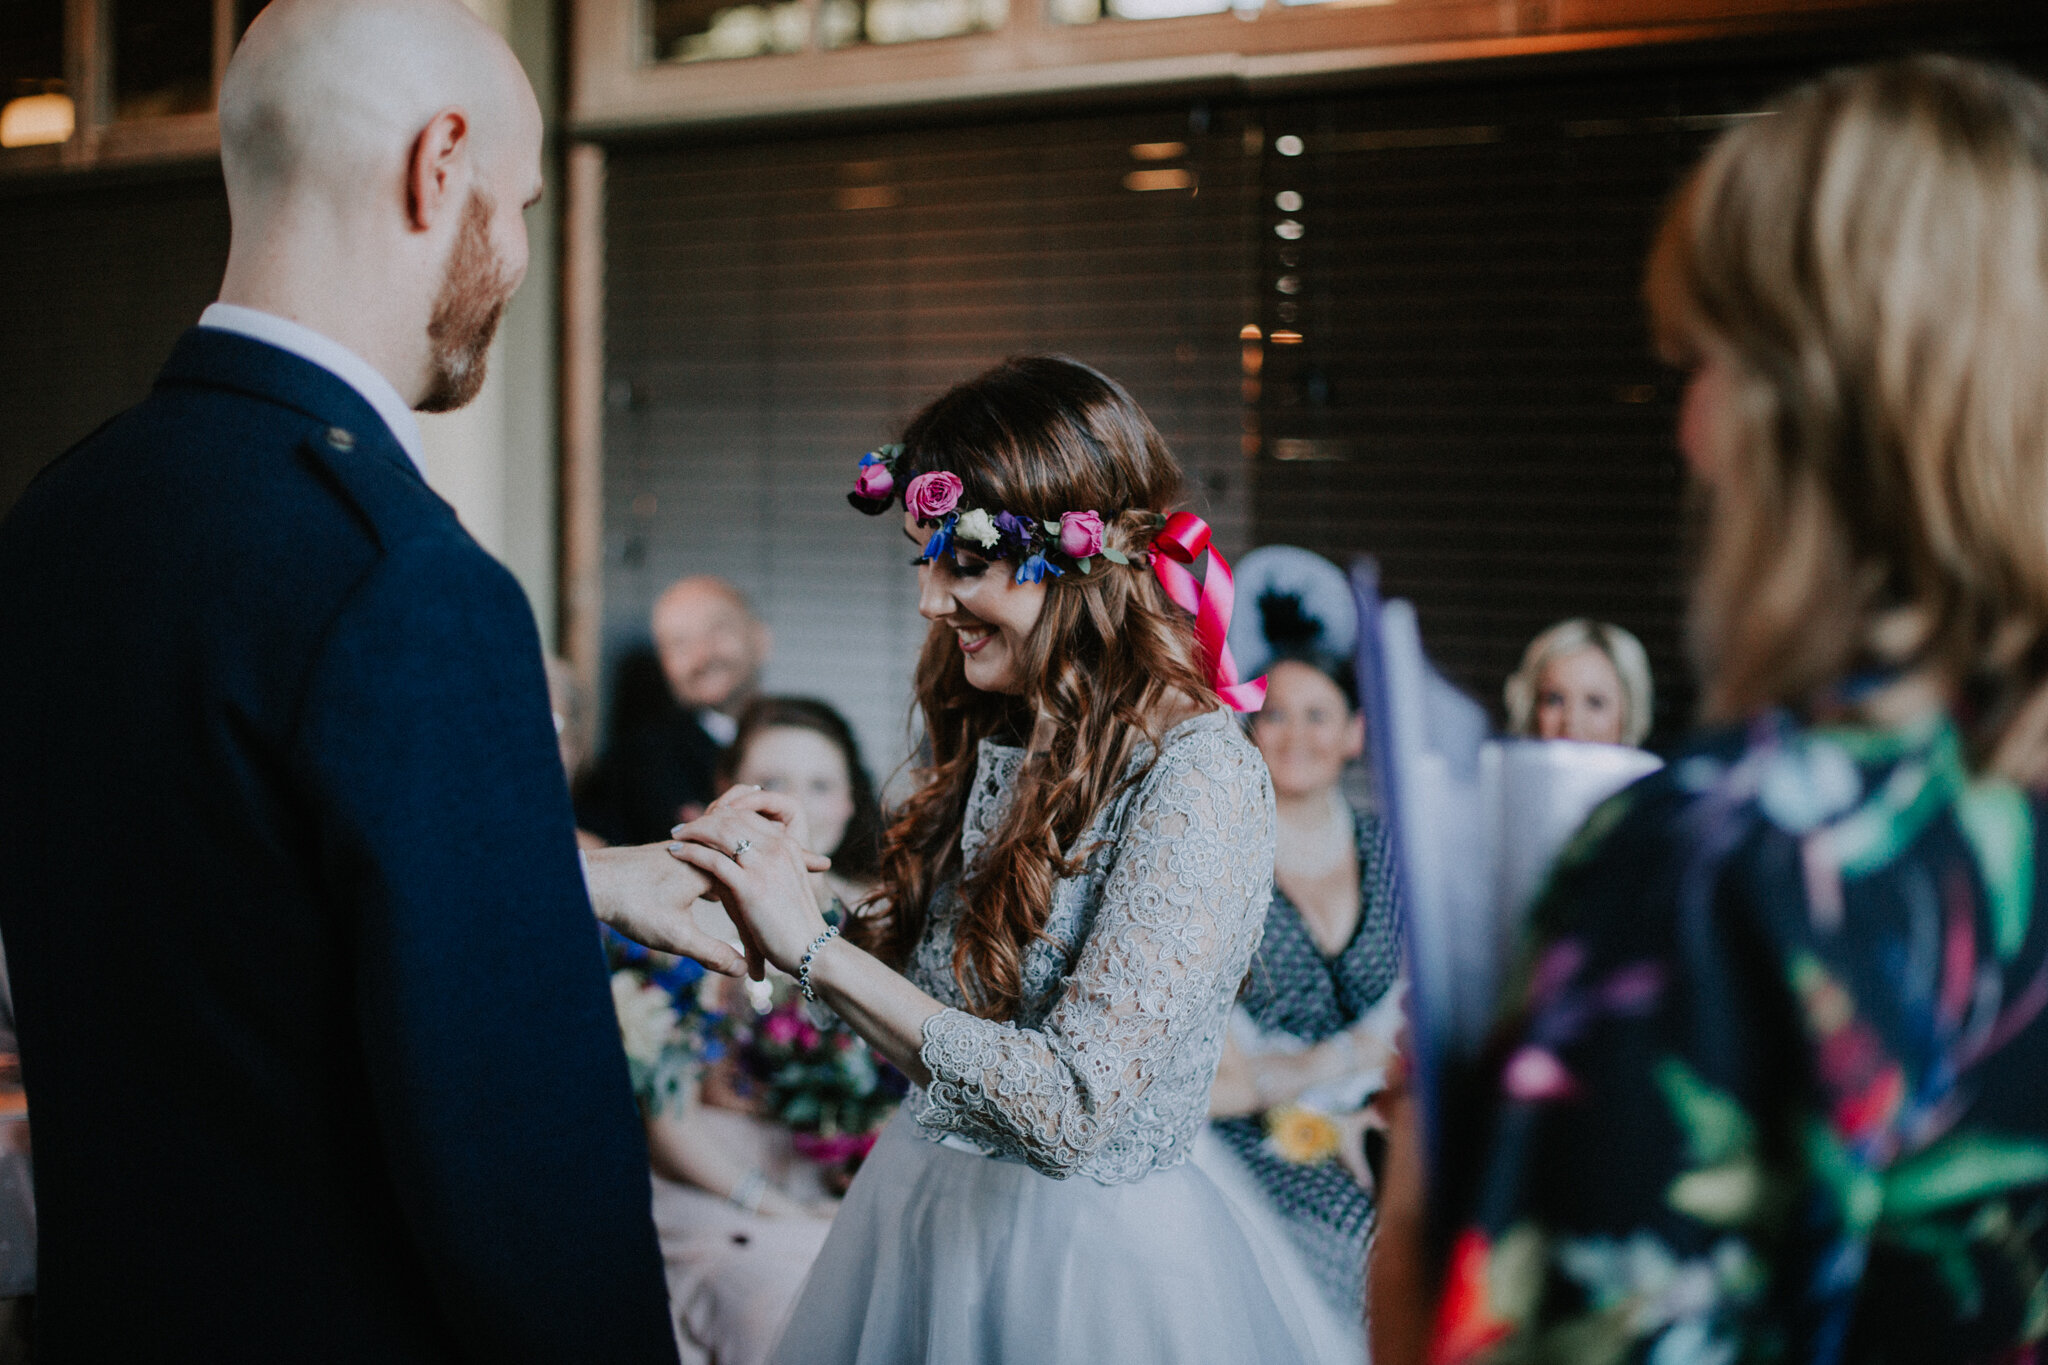 The bride is putting the wedding ring on groom's finger